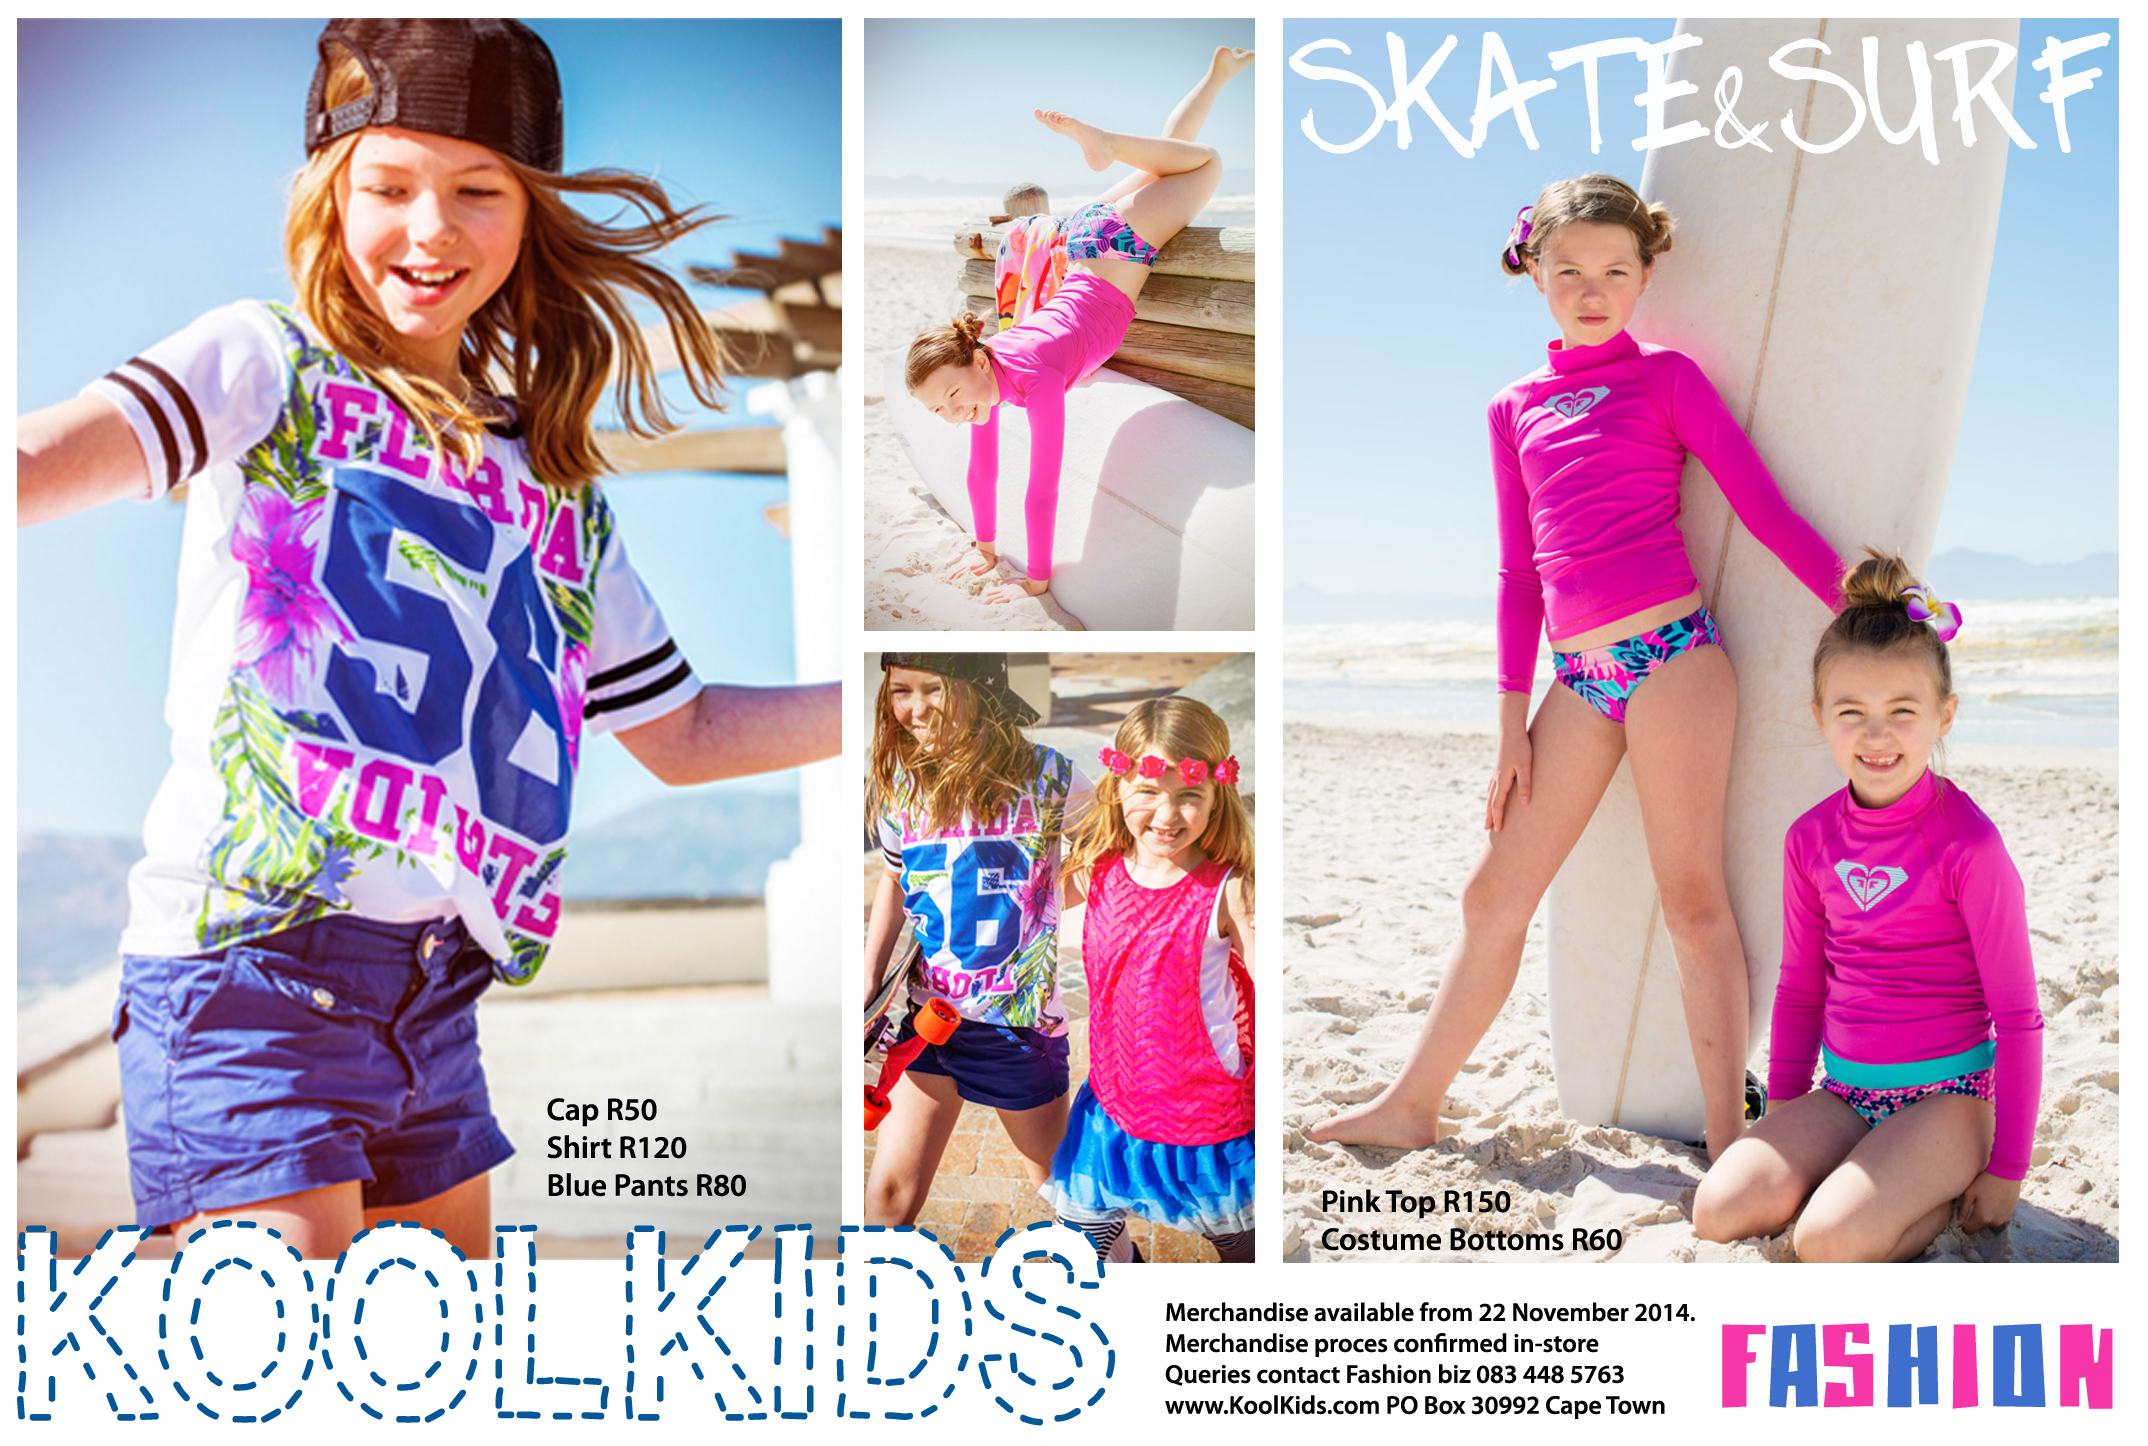 KoolKids Skate and Surf